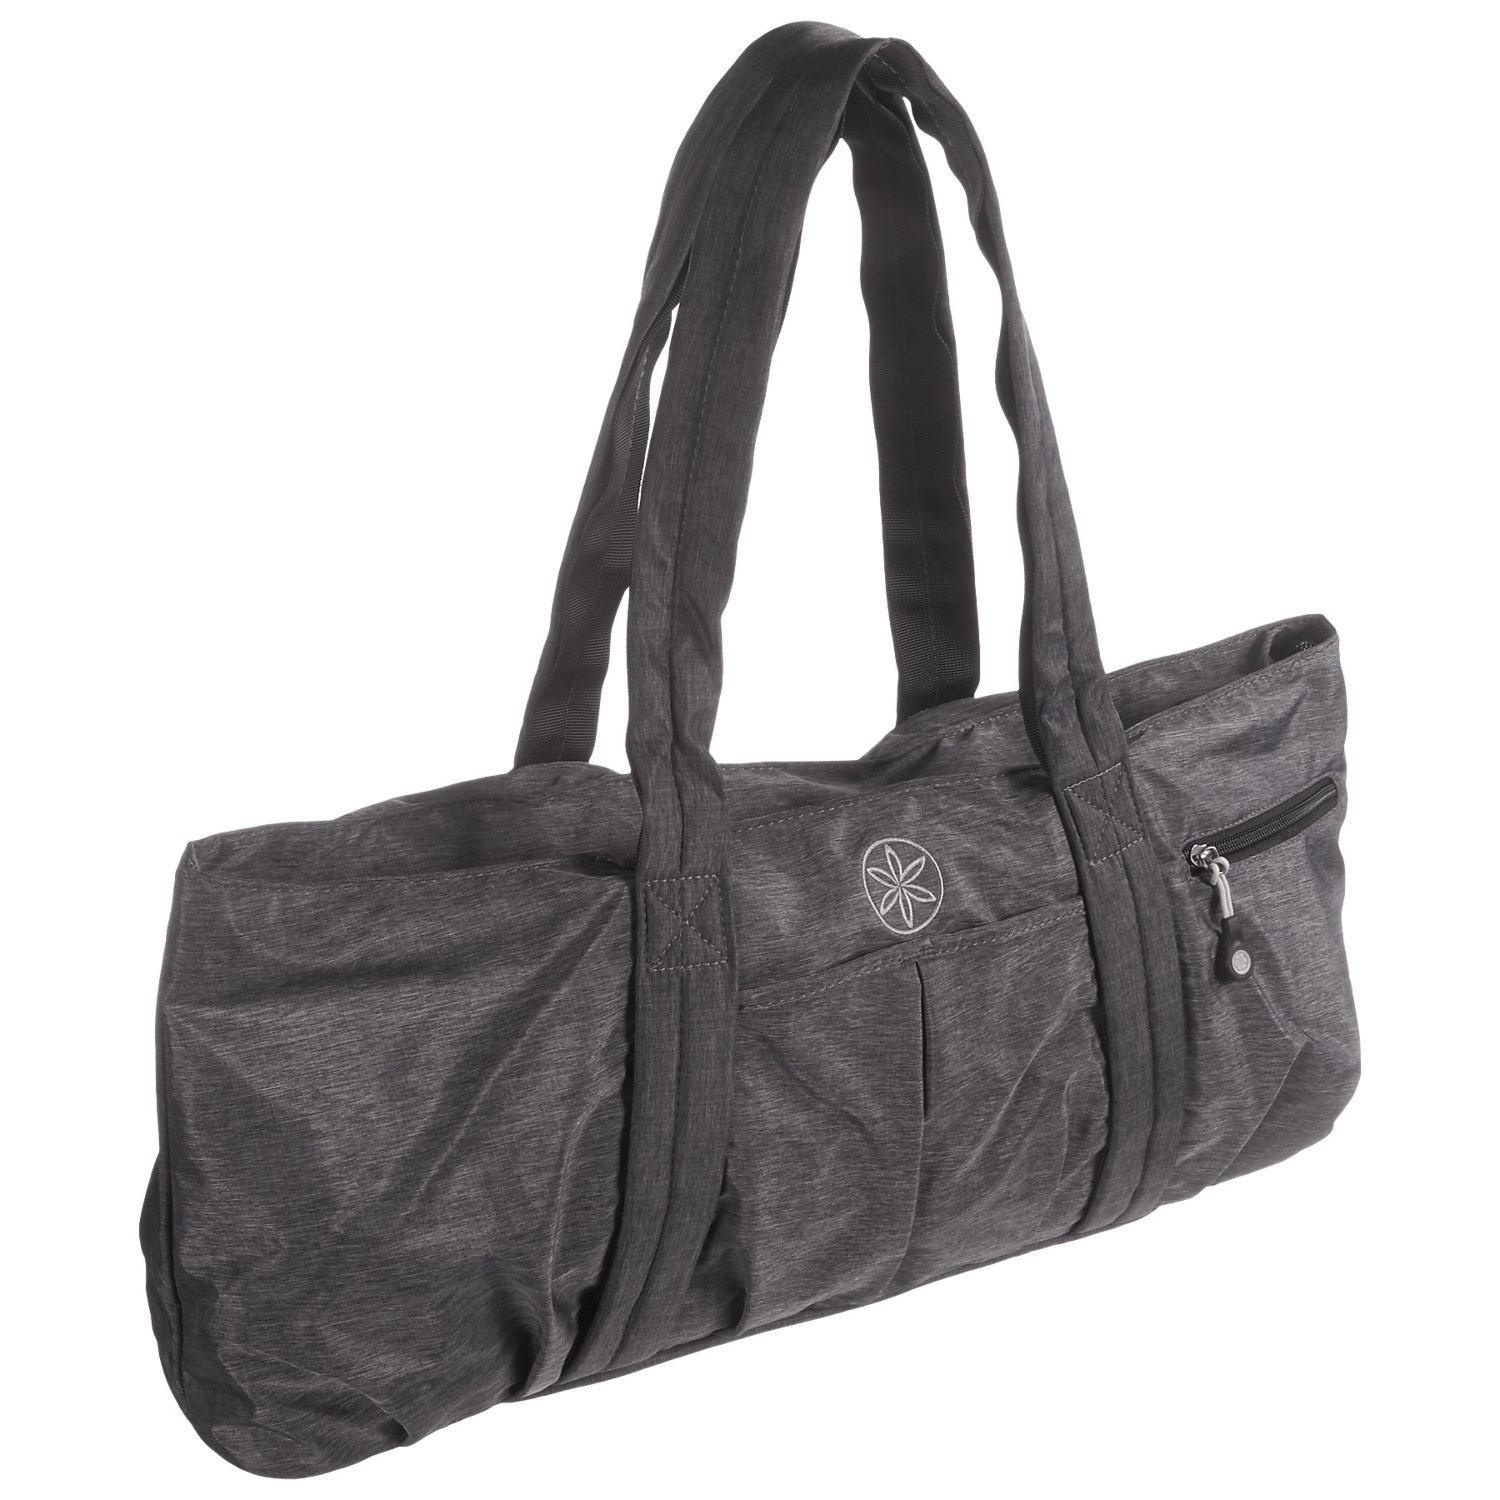 Gaiam All Day Yoga Tote Bag In Grey